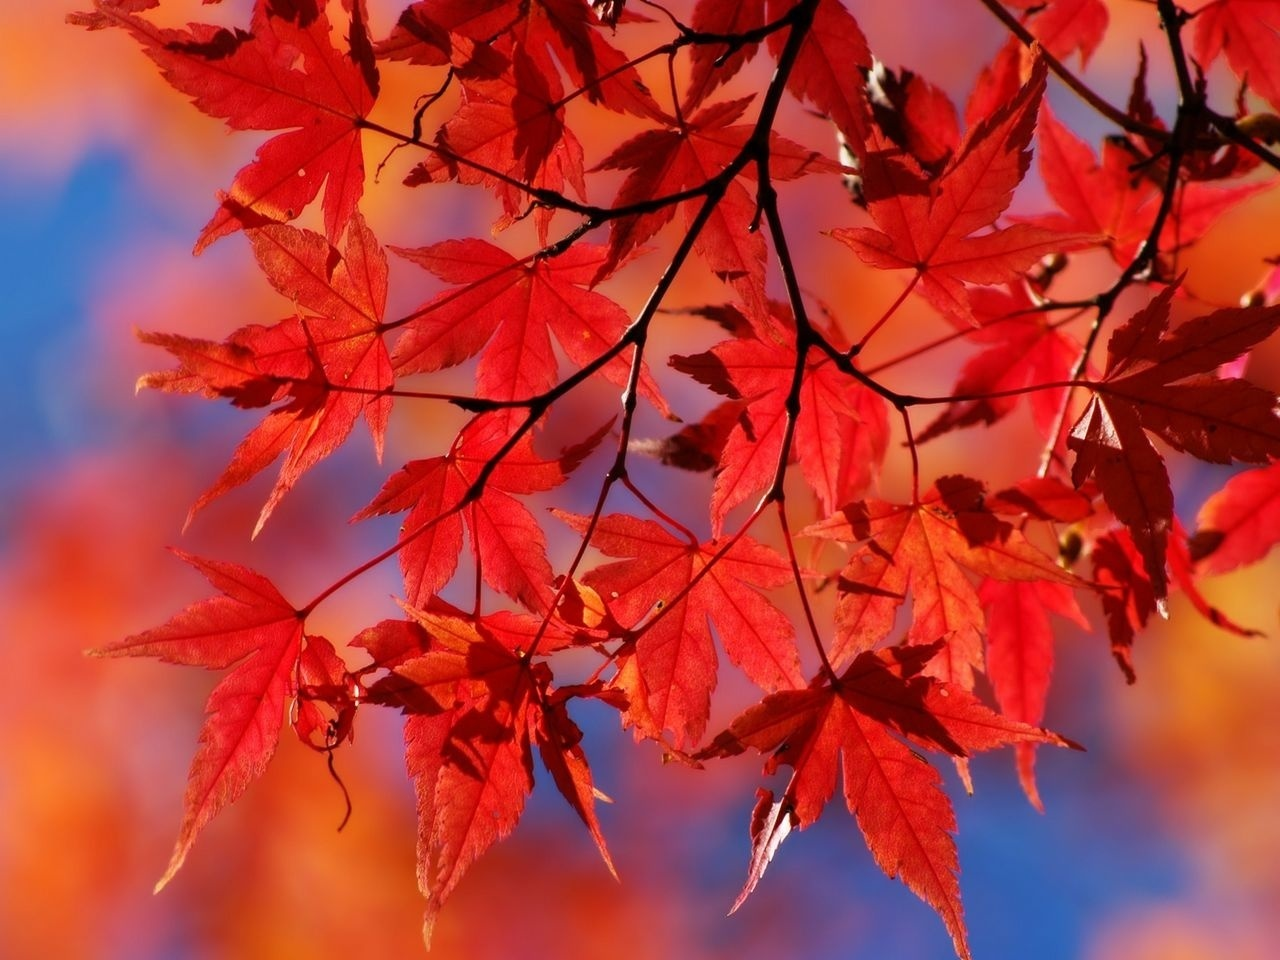 red images red leaves hd wallpaper and background photos (22176615)